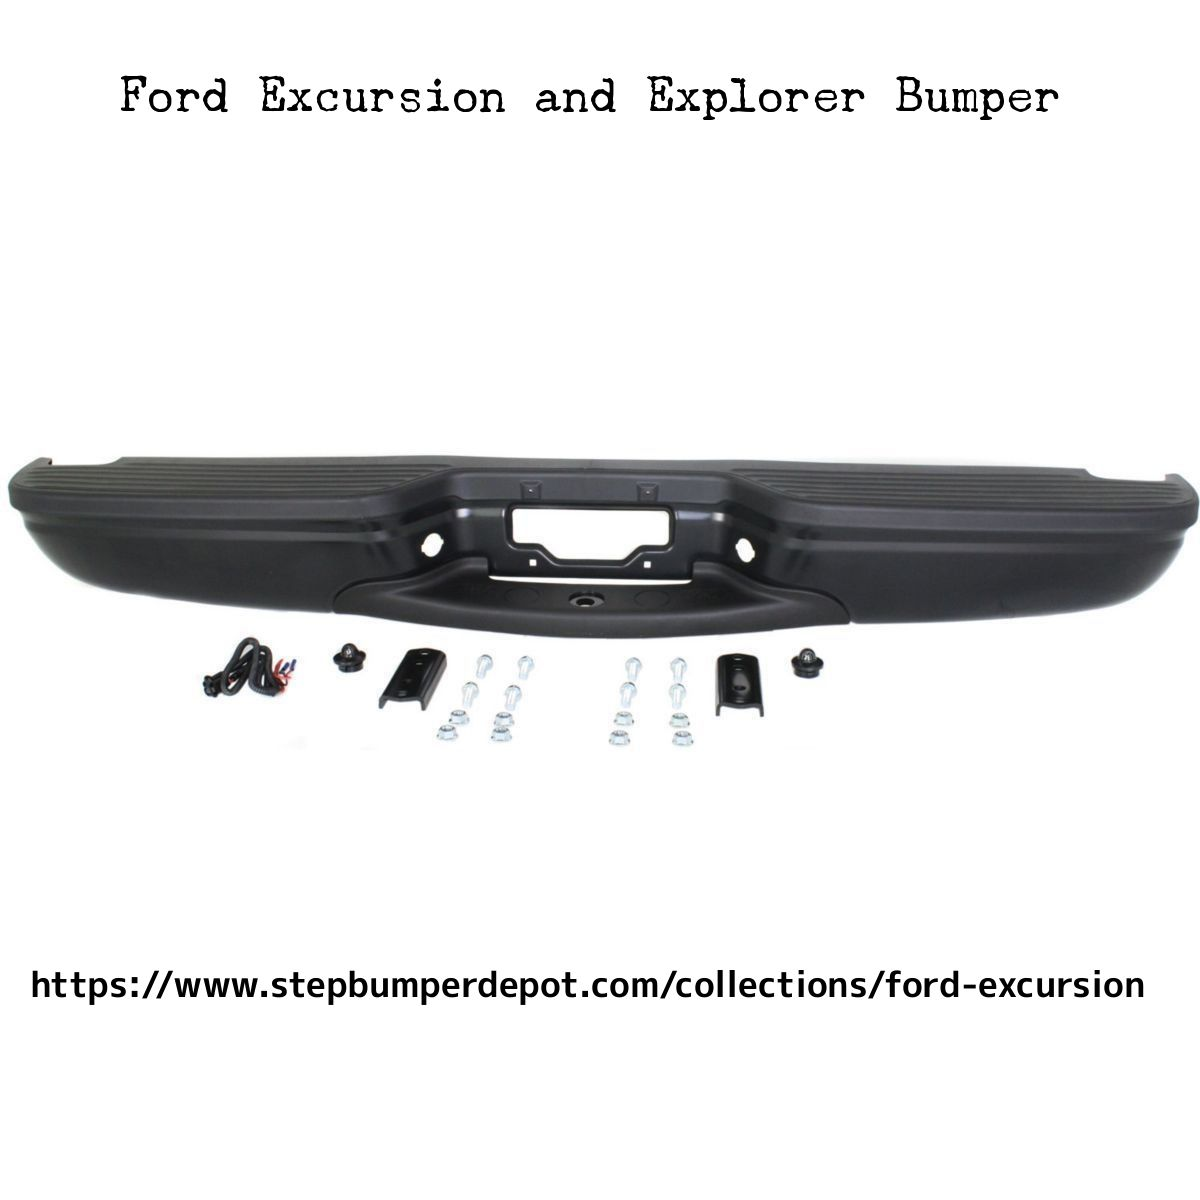 Buy or replace Rear bumpers for Ford excursion and